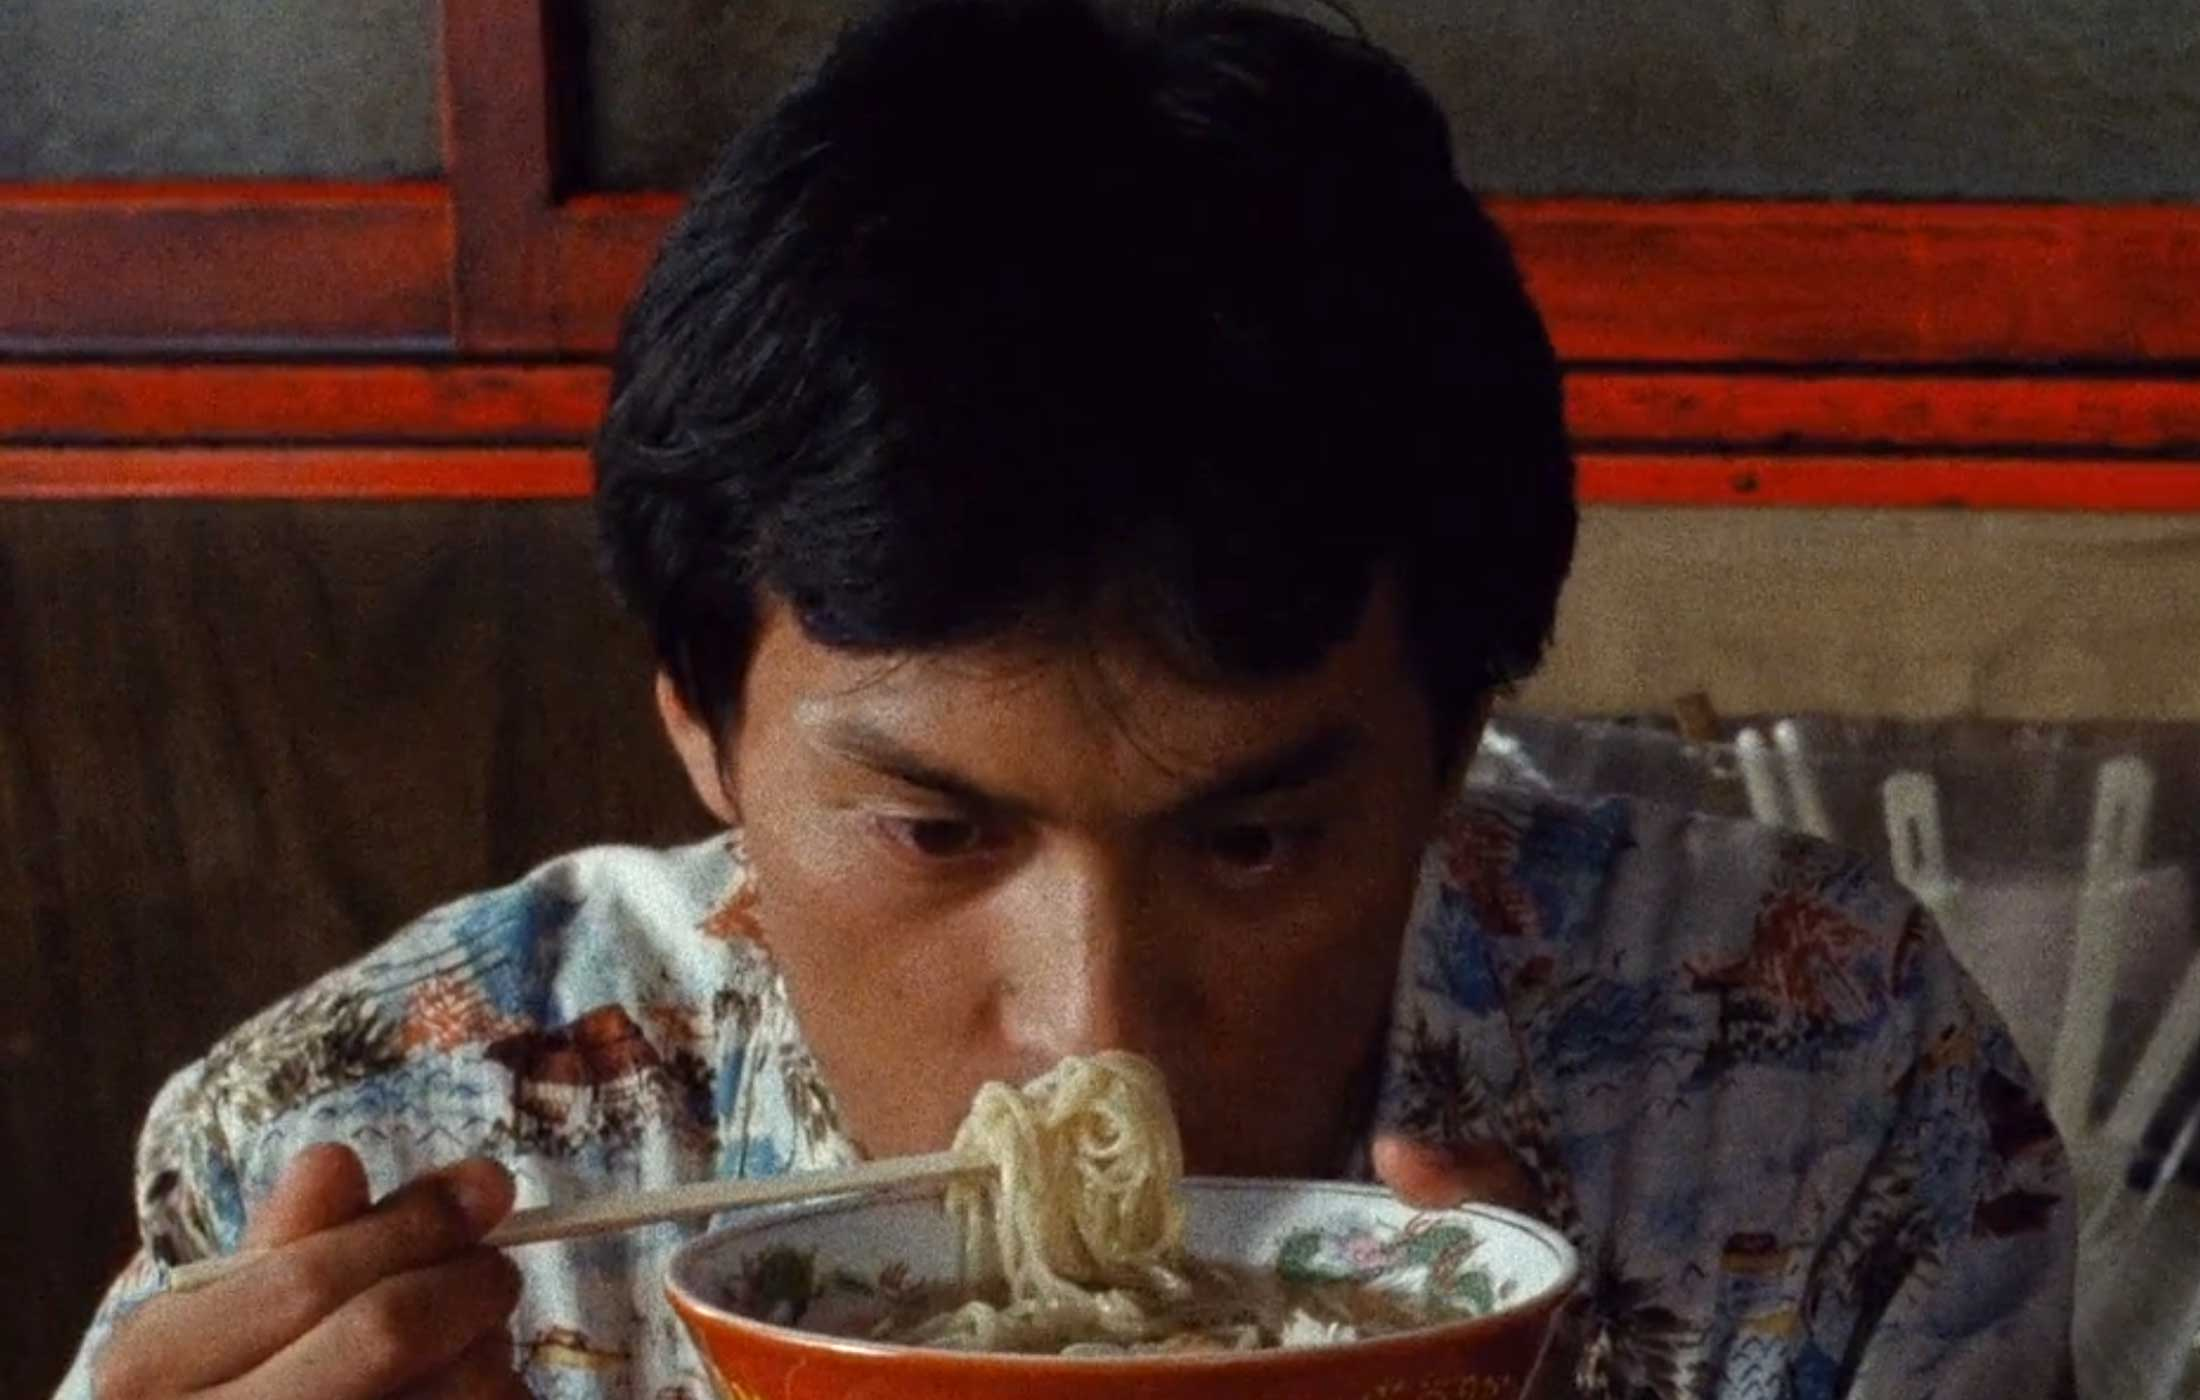 A video essay on the film, Tampopo